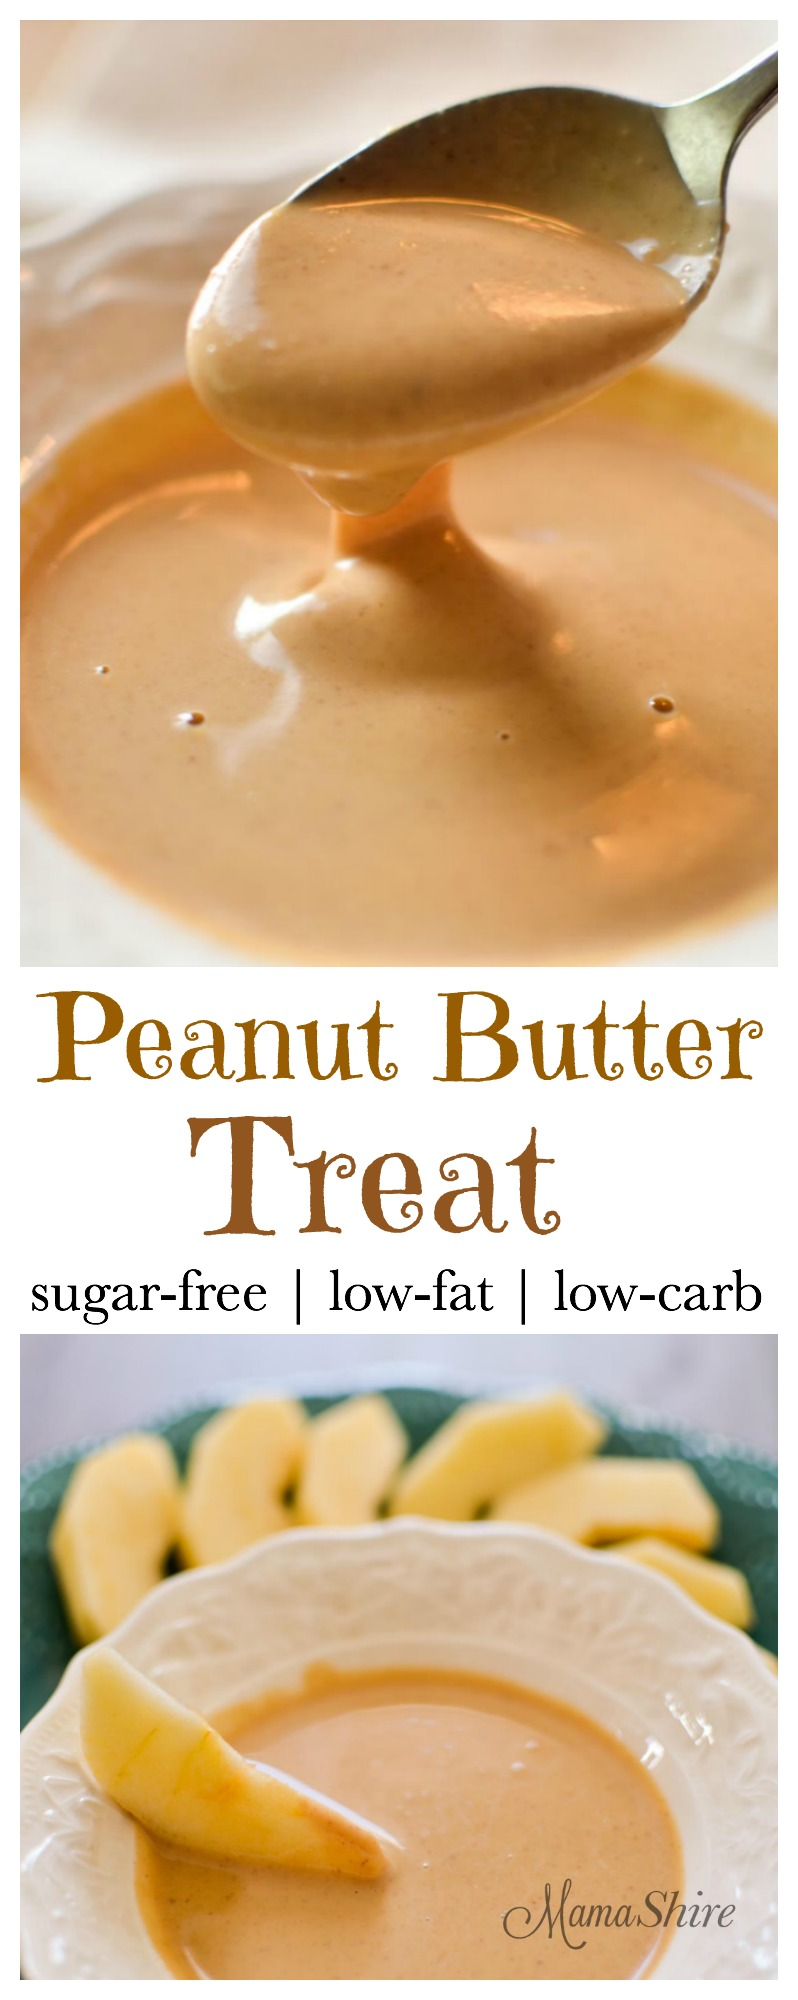 Peanut Butter Treat - Sugar-free, Low-carb, Low-fat